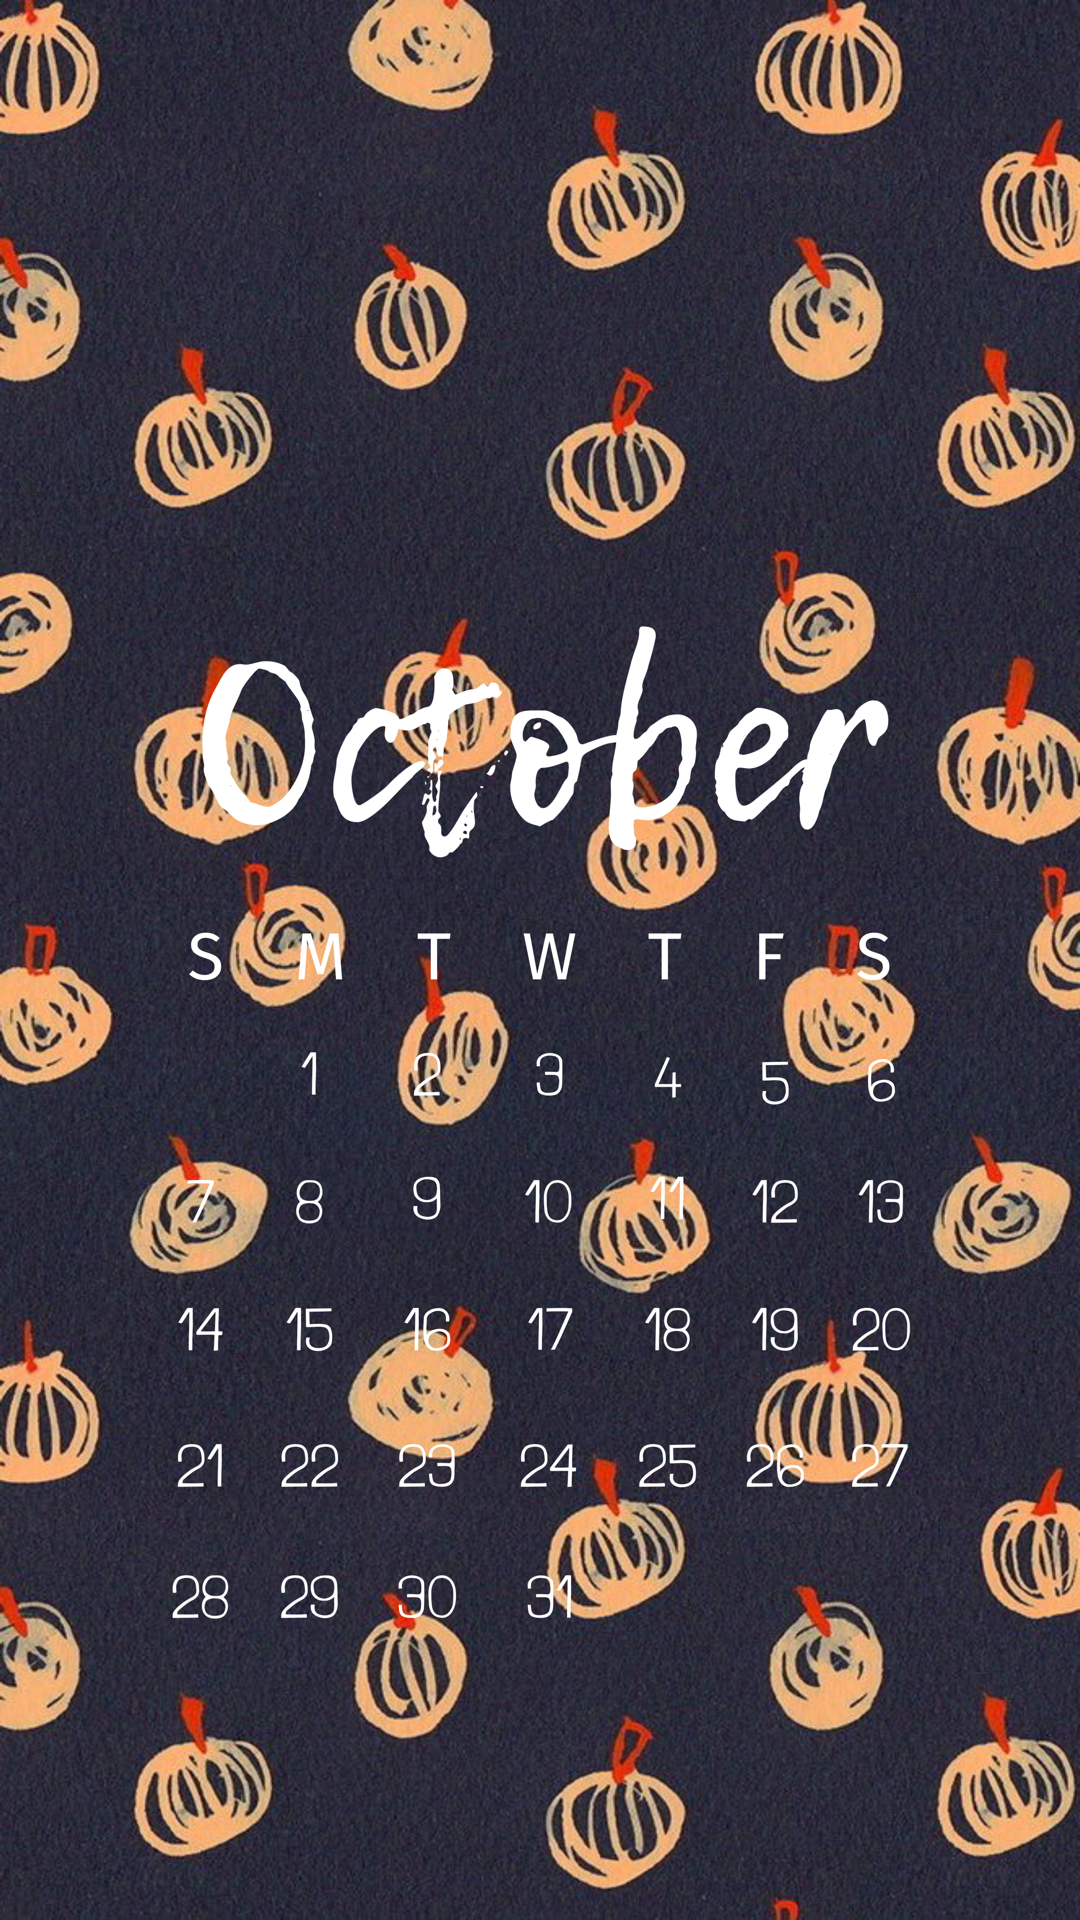 Made On Canva Calendar October Fall Background Graphic Design Software Printing Business Cards Pattern Illustration